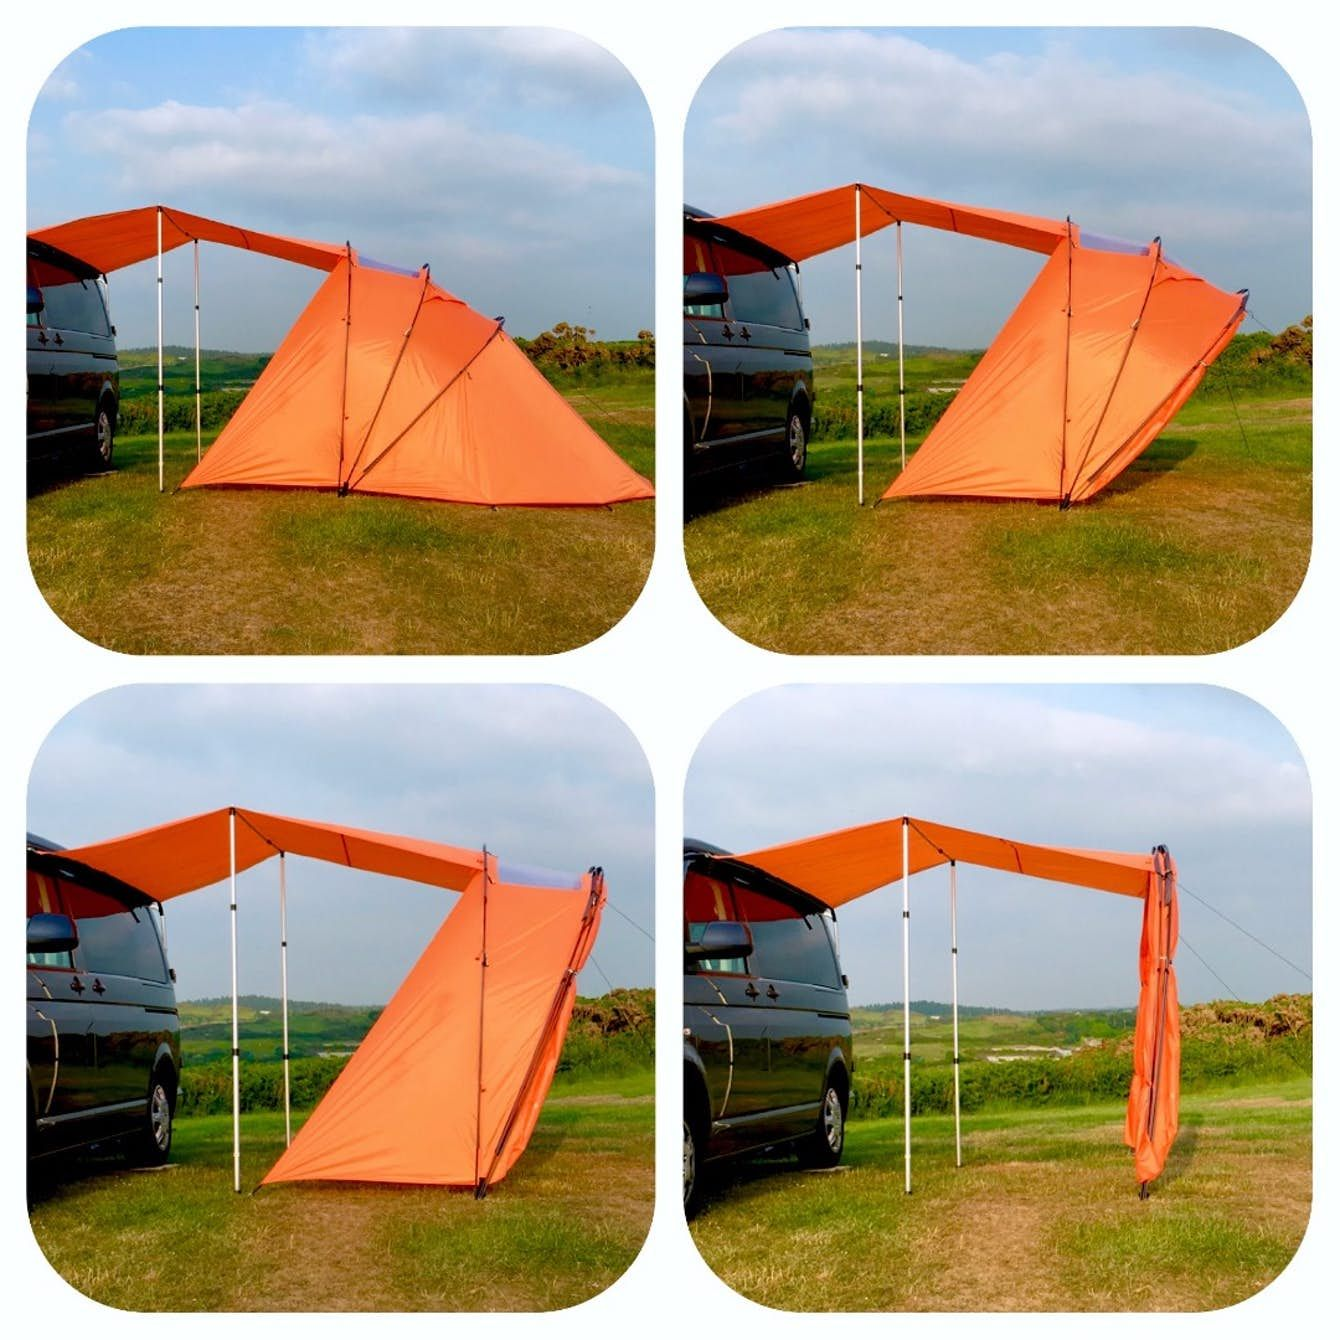 Retractable Awning Tent Adds Extra Roof And Views To Your Camper Van Tent Campervan Awnings Camper